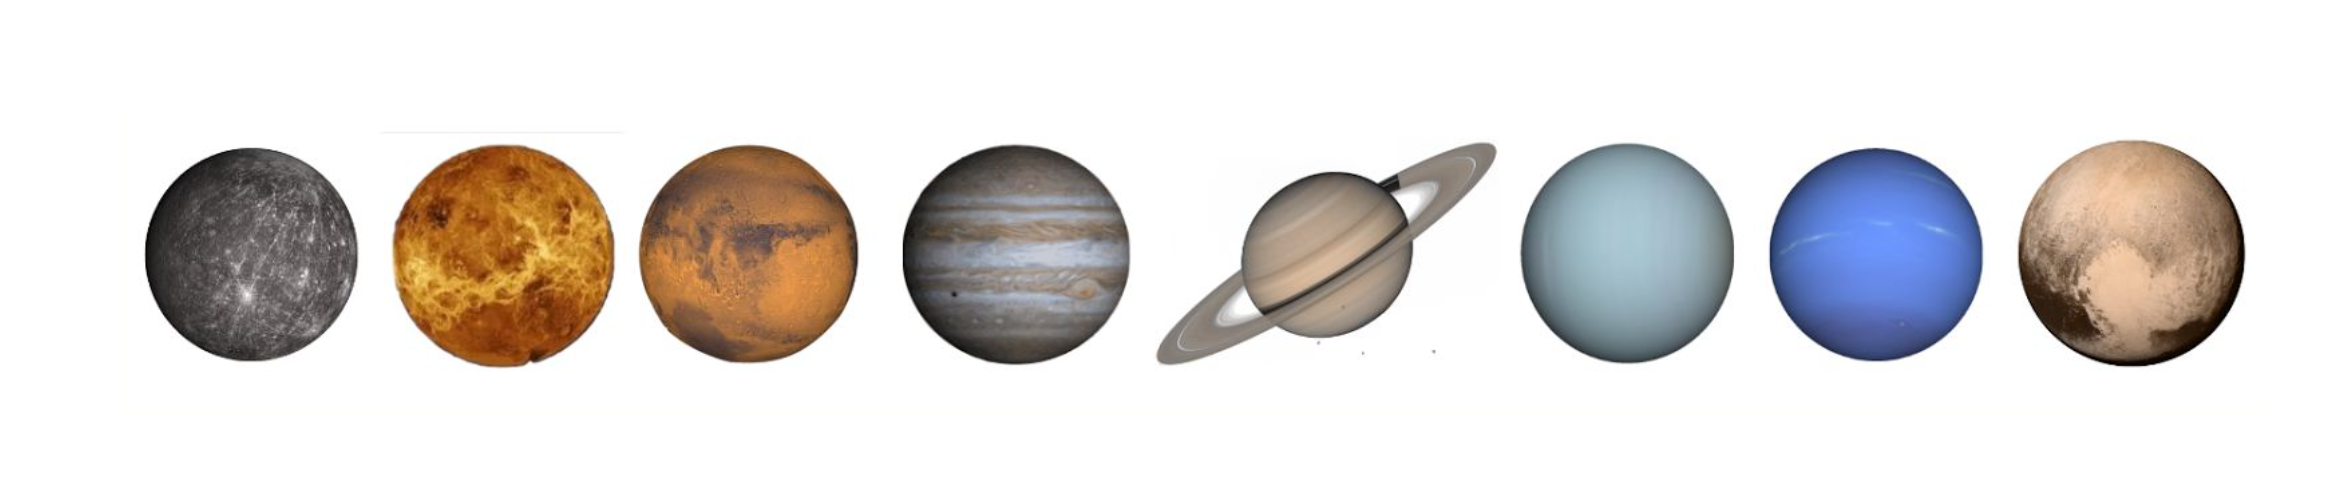 Science Planets Curly Hair On Unicode Agenda